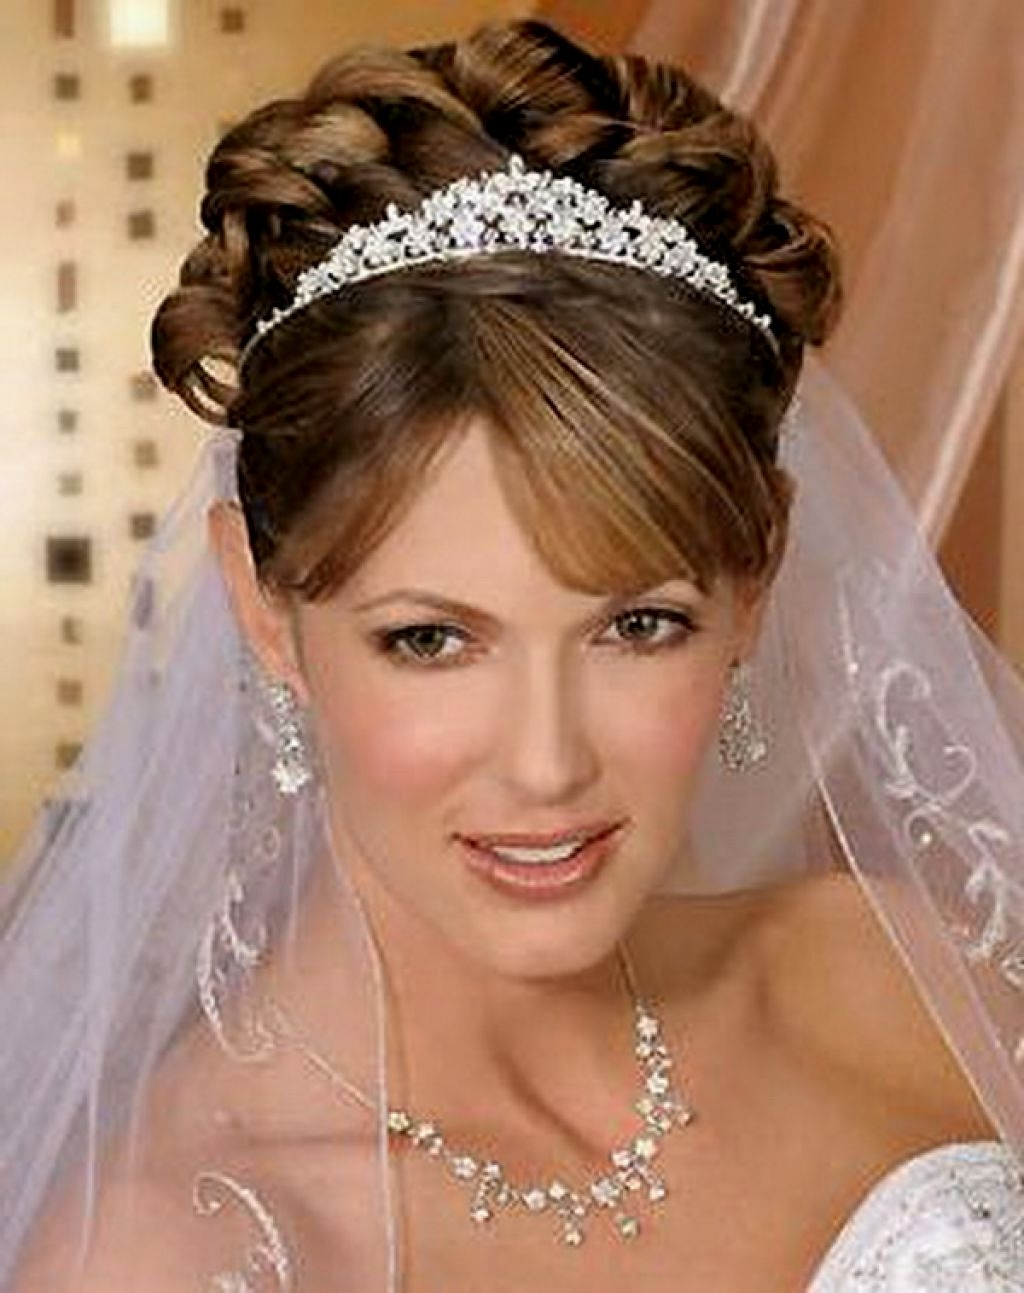 Best And Newest Wedding Hairstyles For Long Hair With Tiara In Bridal Hairstyles Updo With Tiara (View 9 of 15)